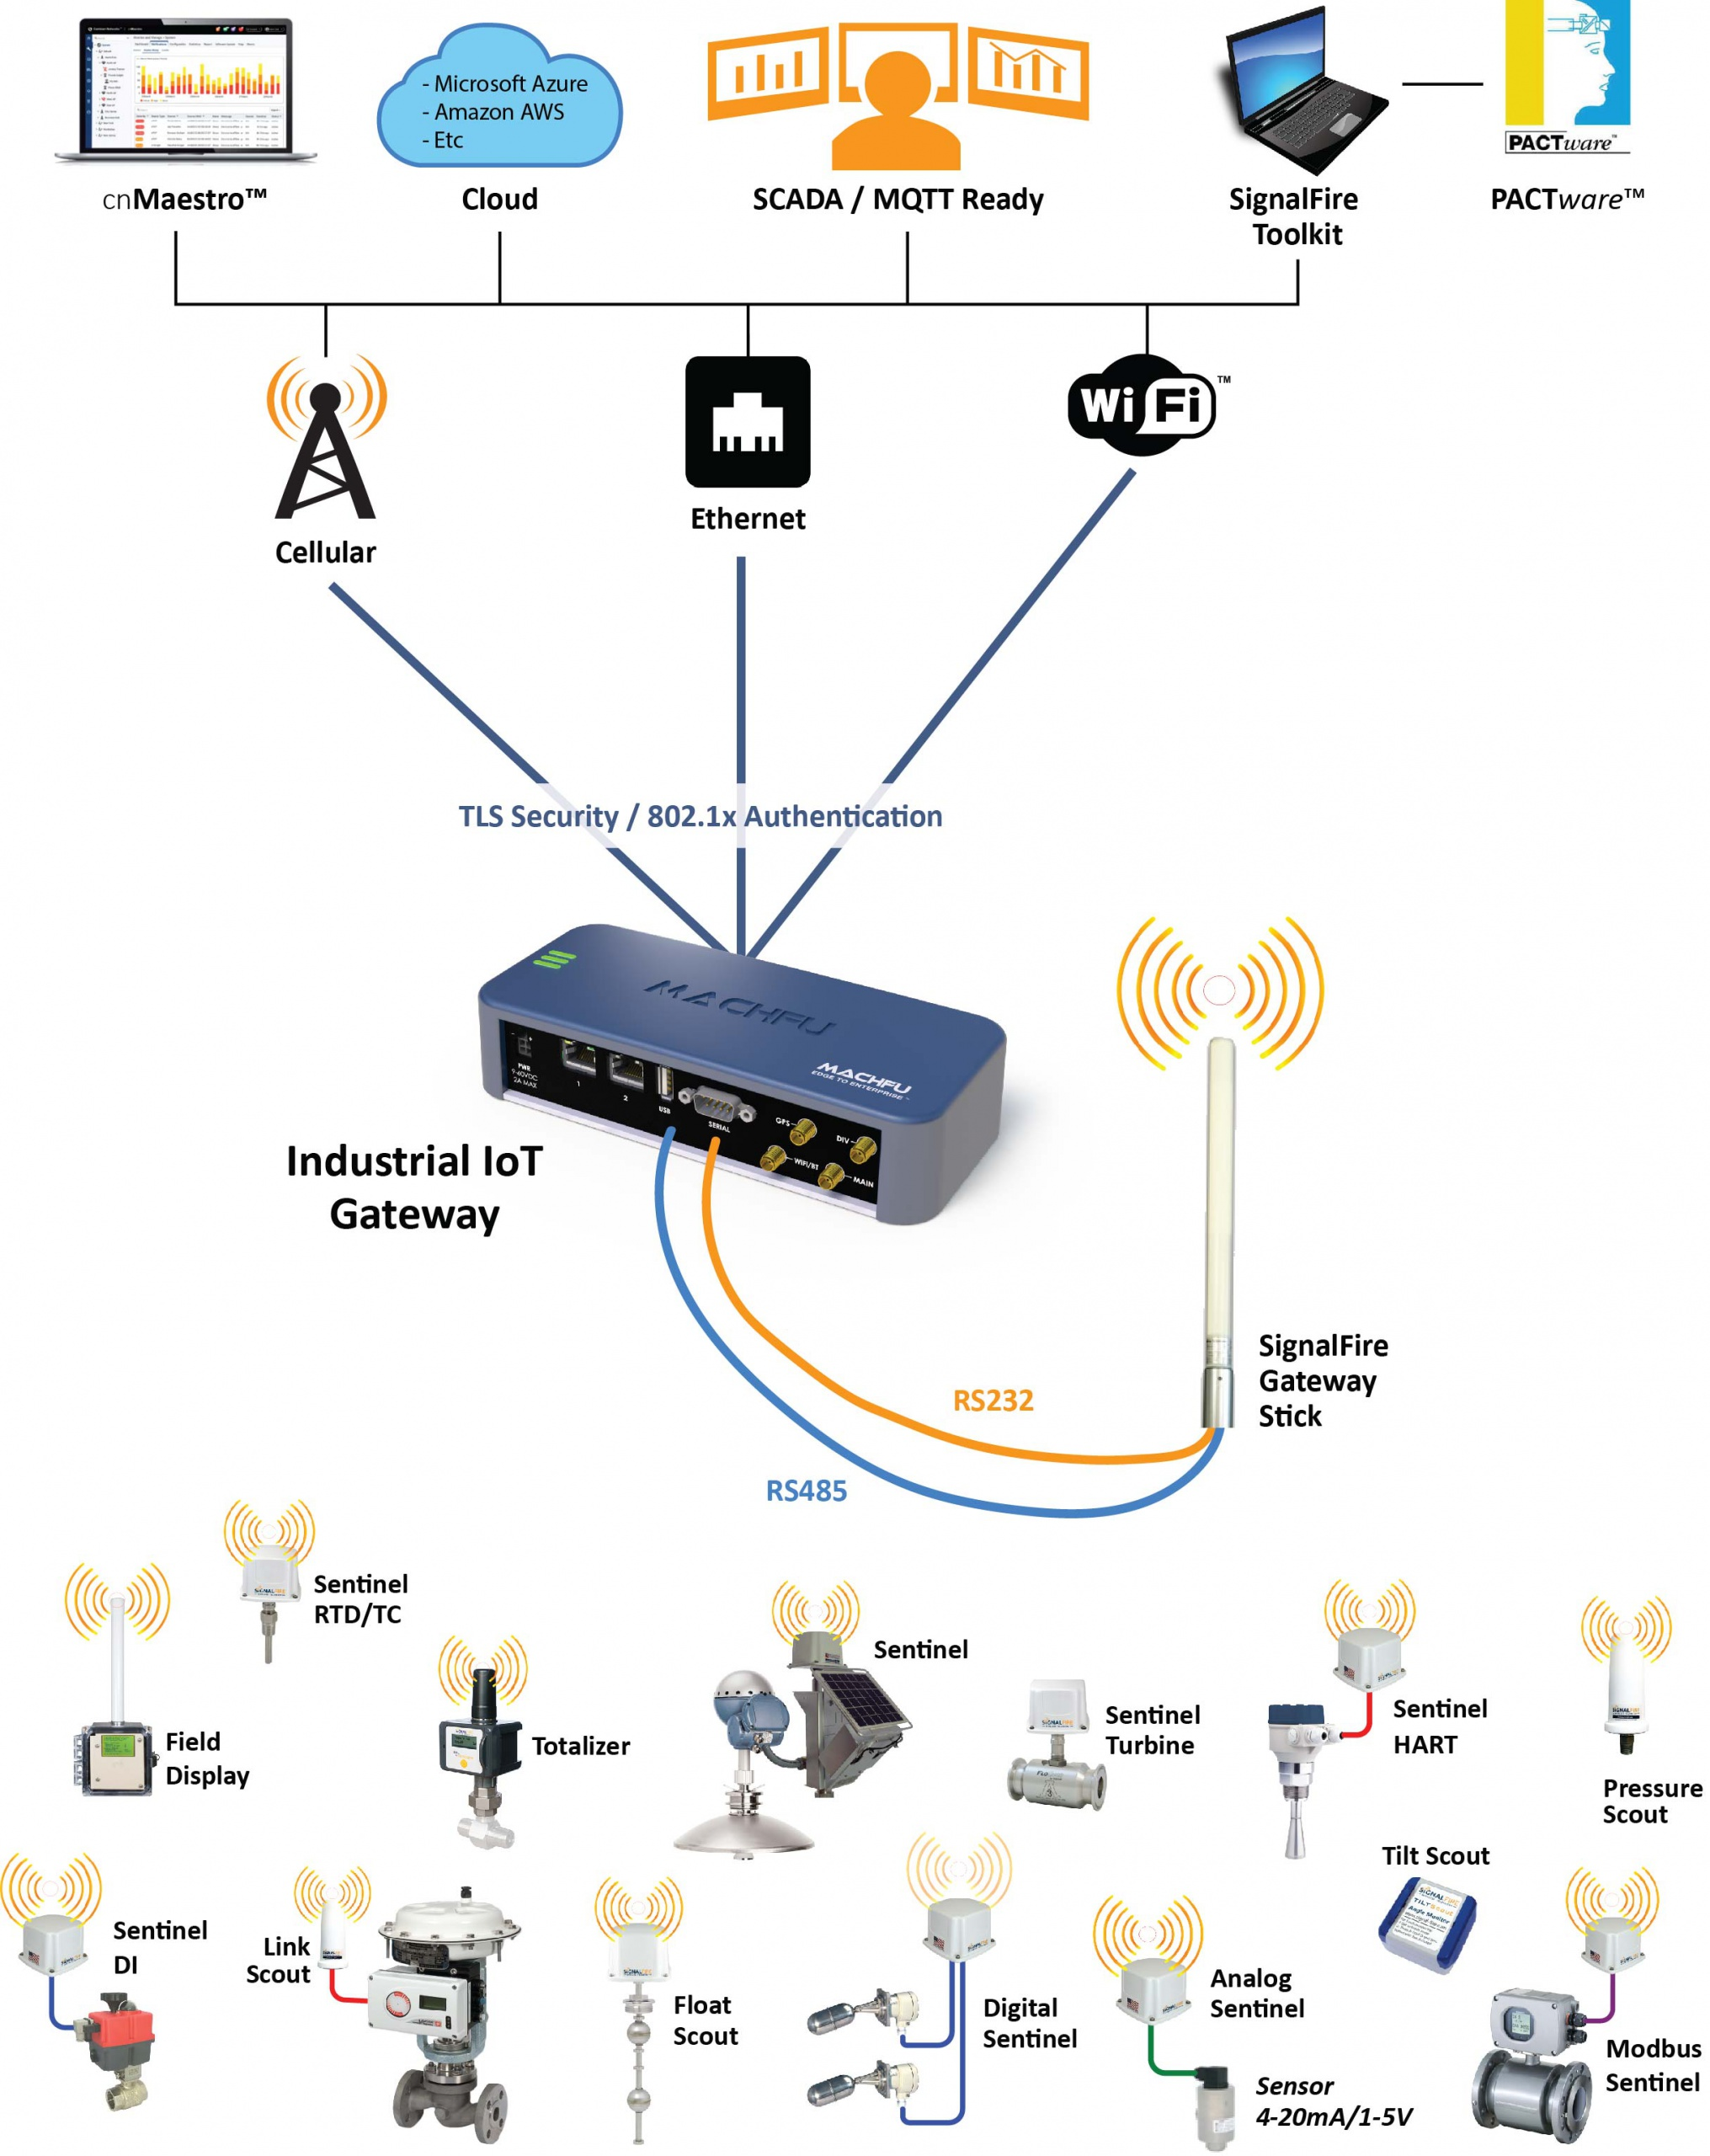 integration of the SignalFire wireless network and the Machfu IIoT Gateway